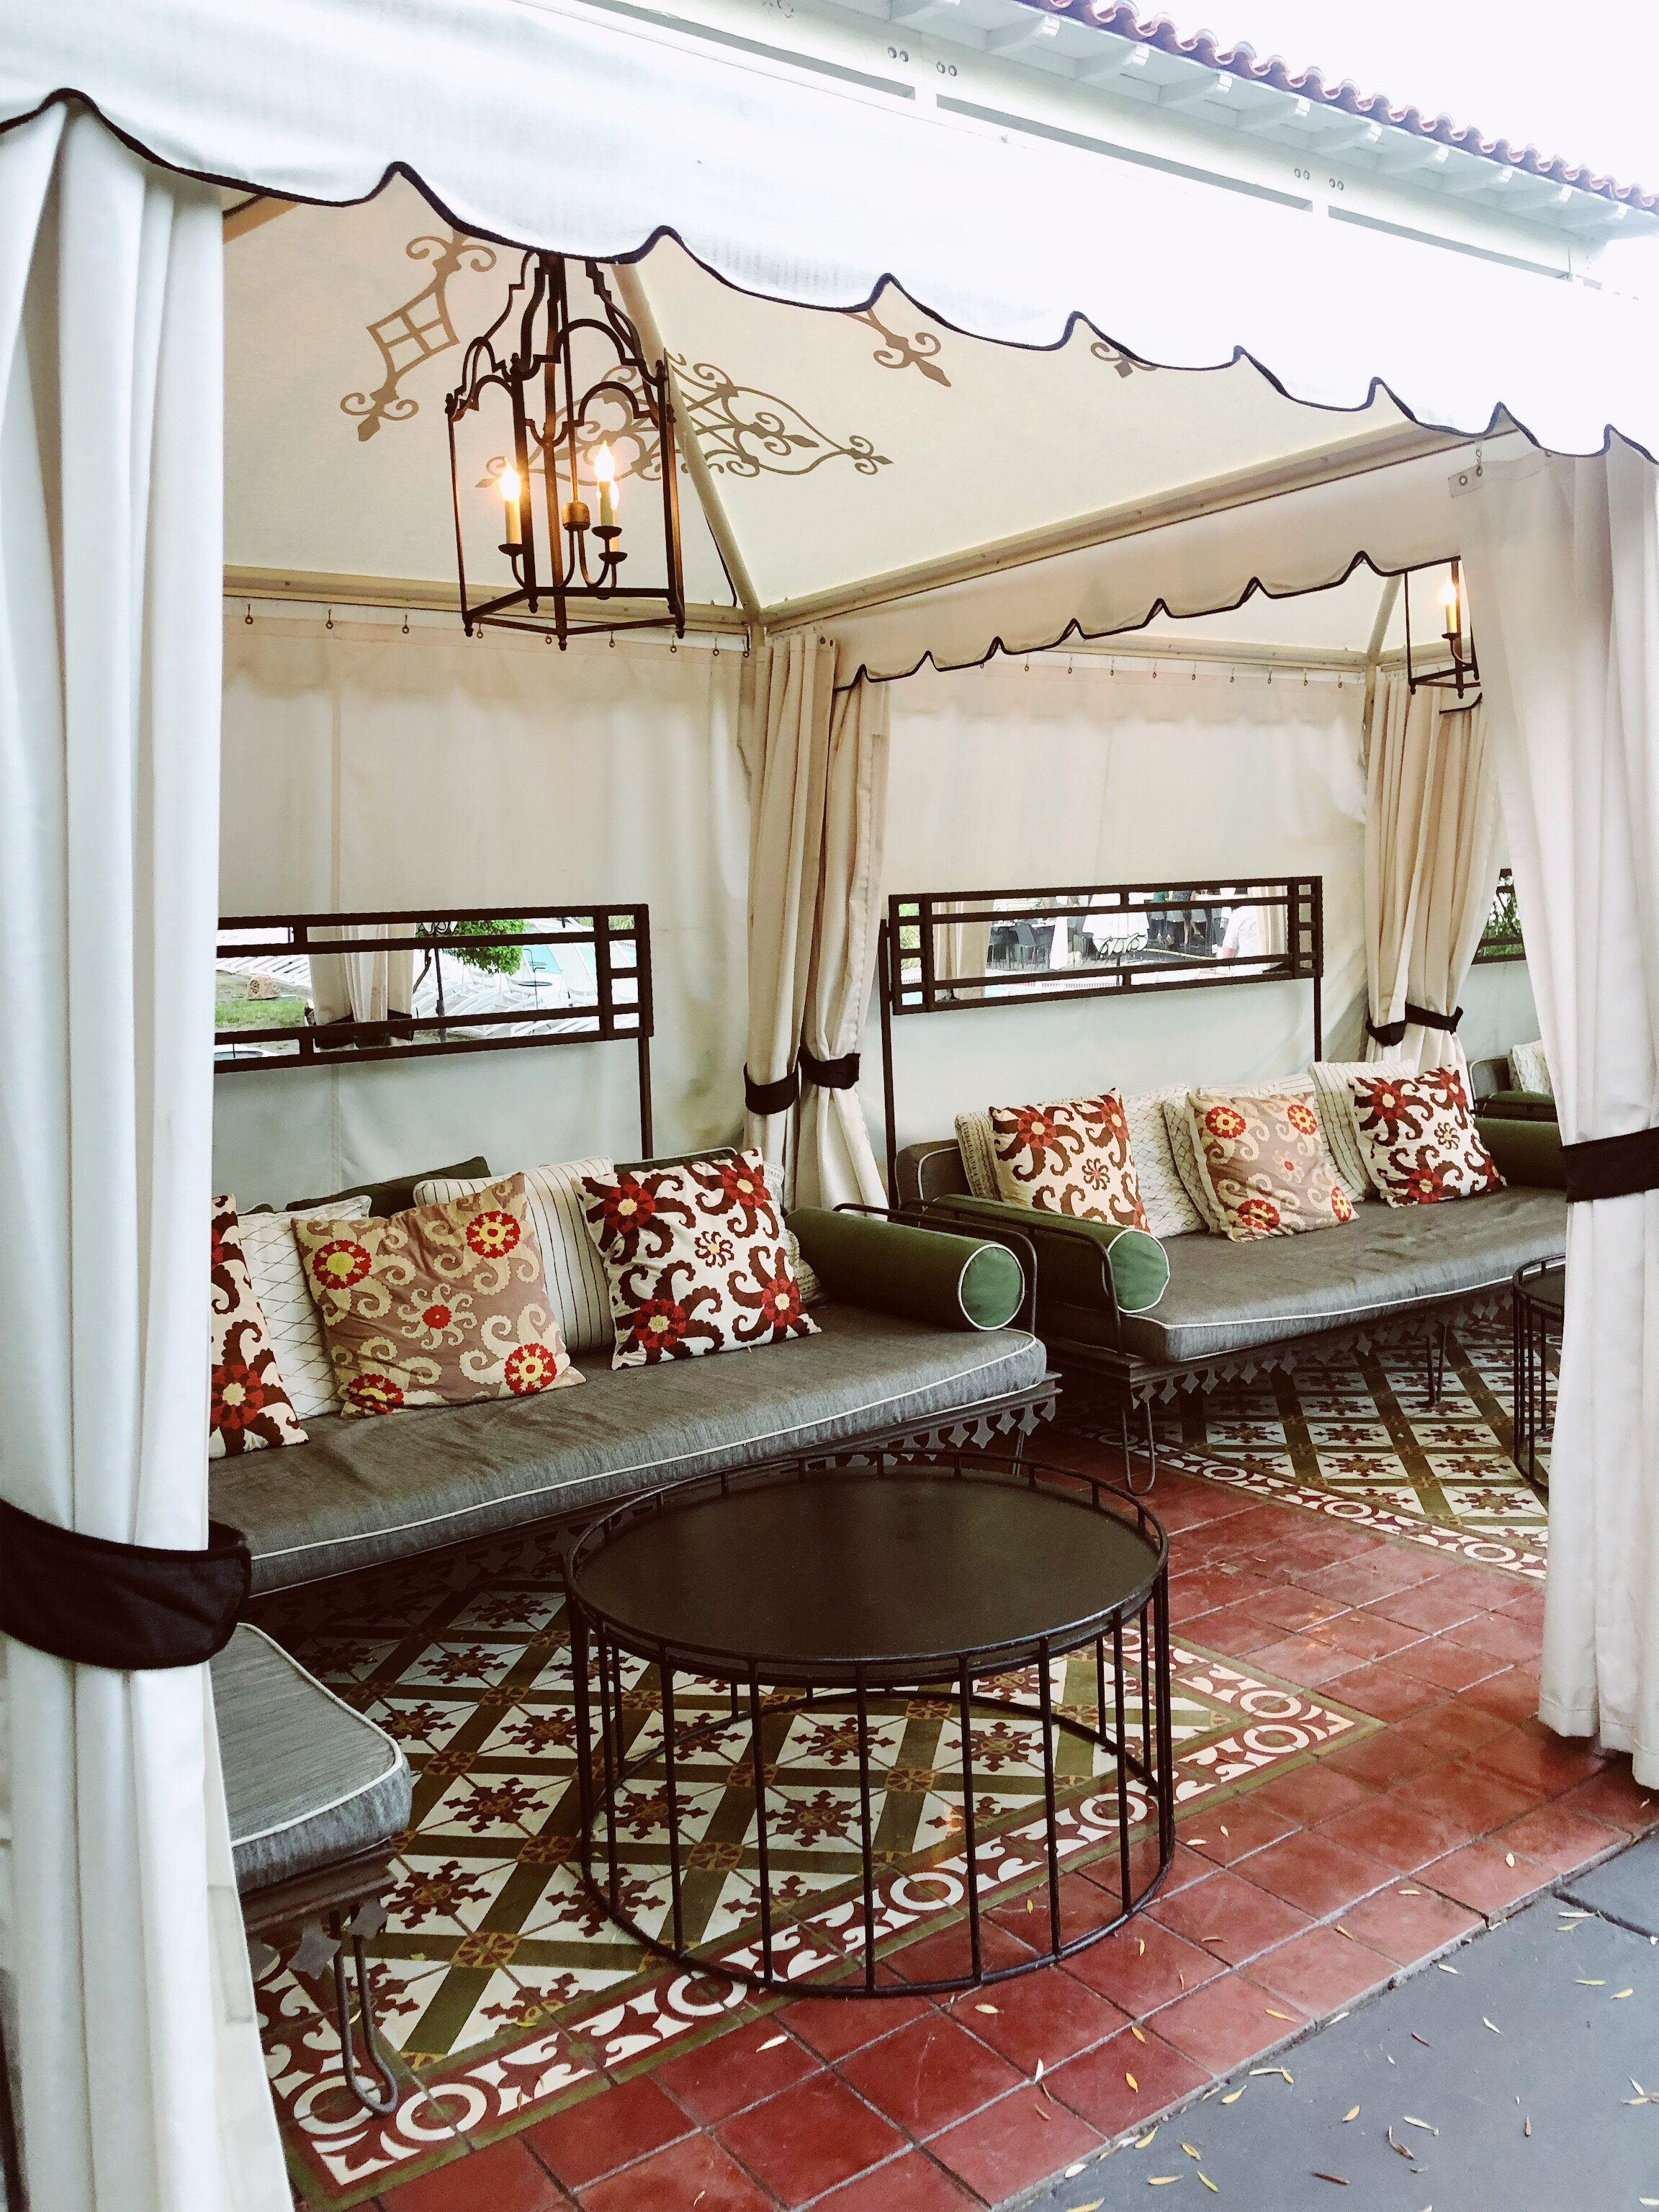 Colony Palms Cabanas.jpg